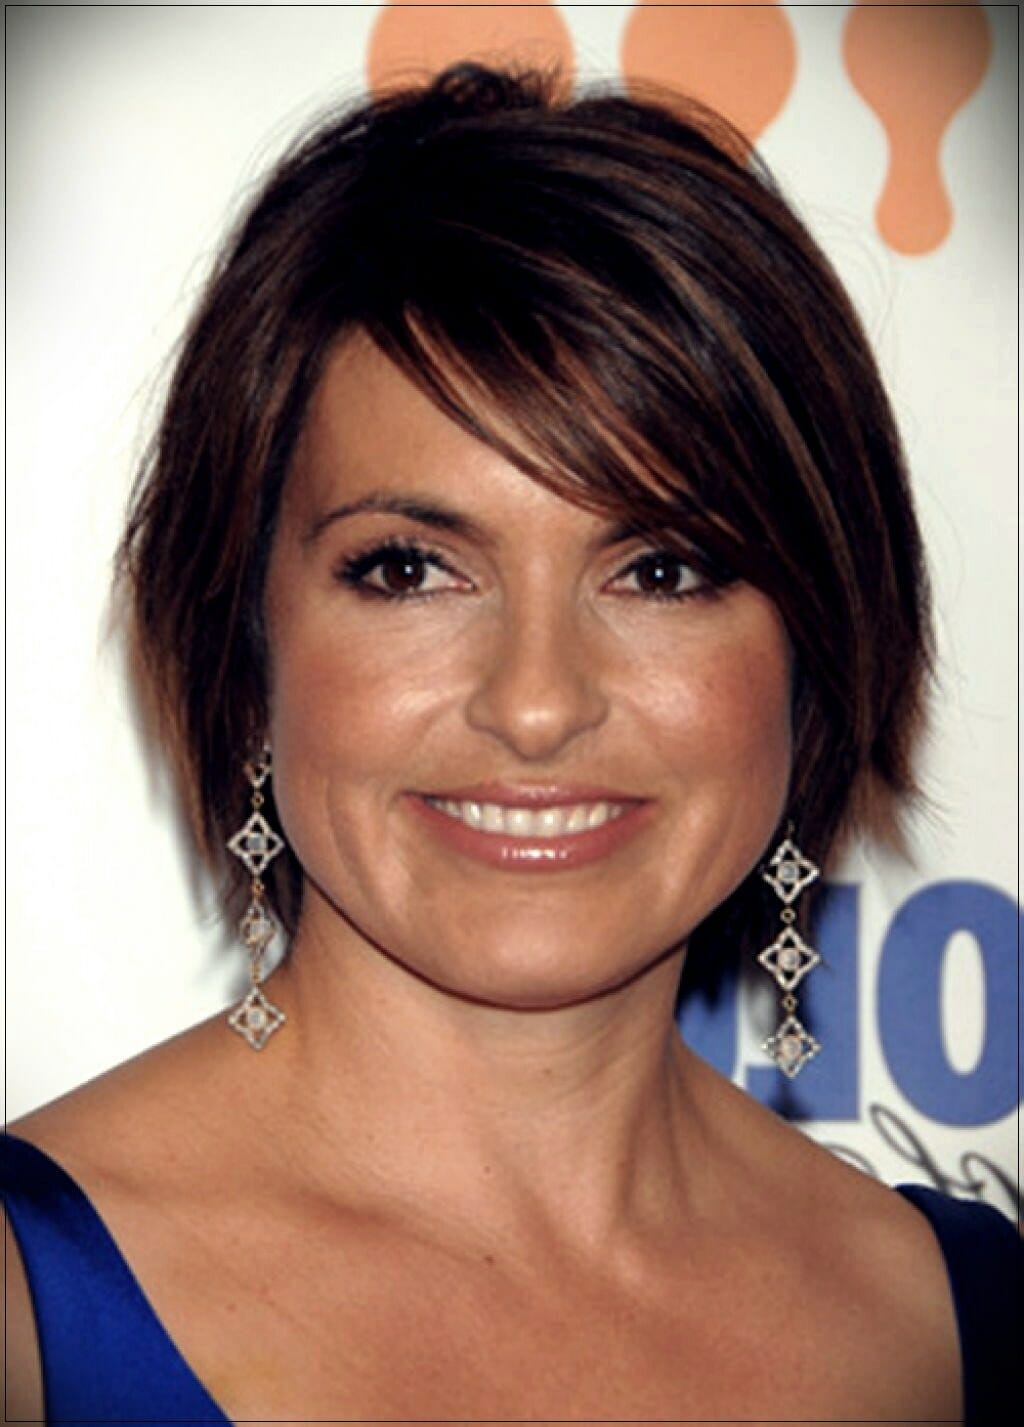 short hairstyles for round faces 13 - Correct hairstyles for your face type